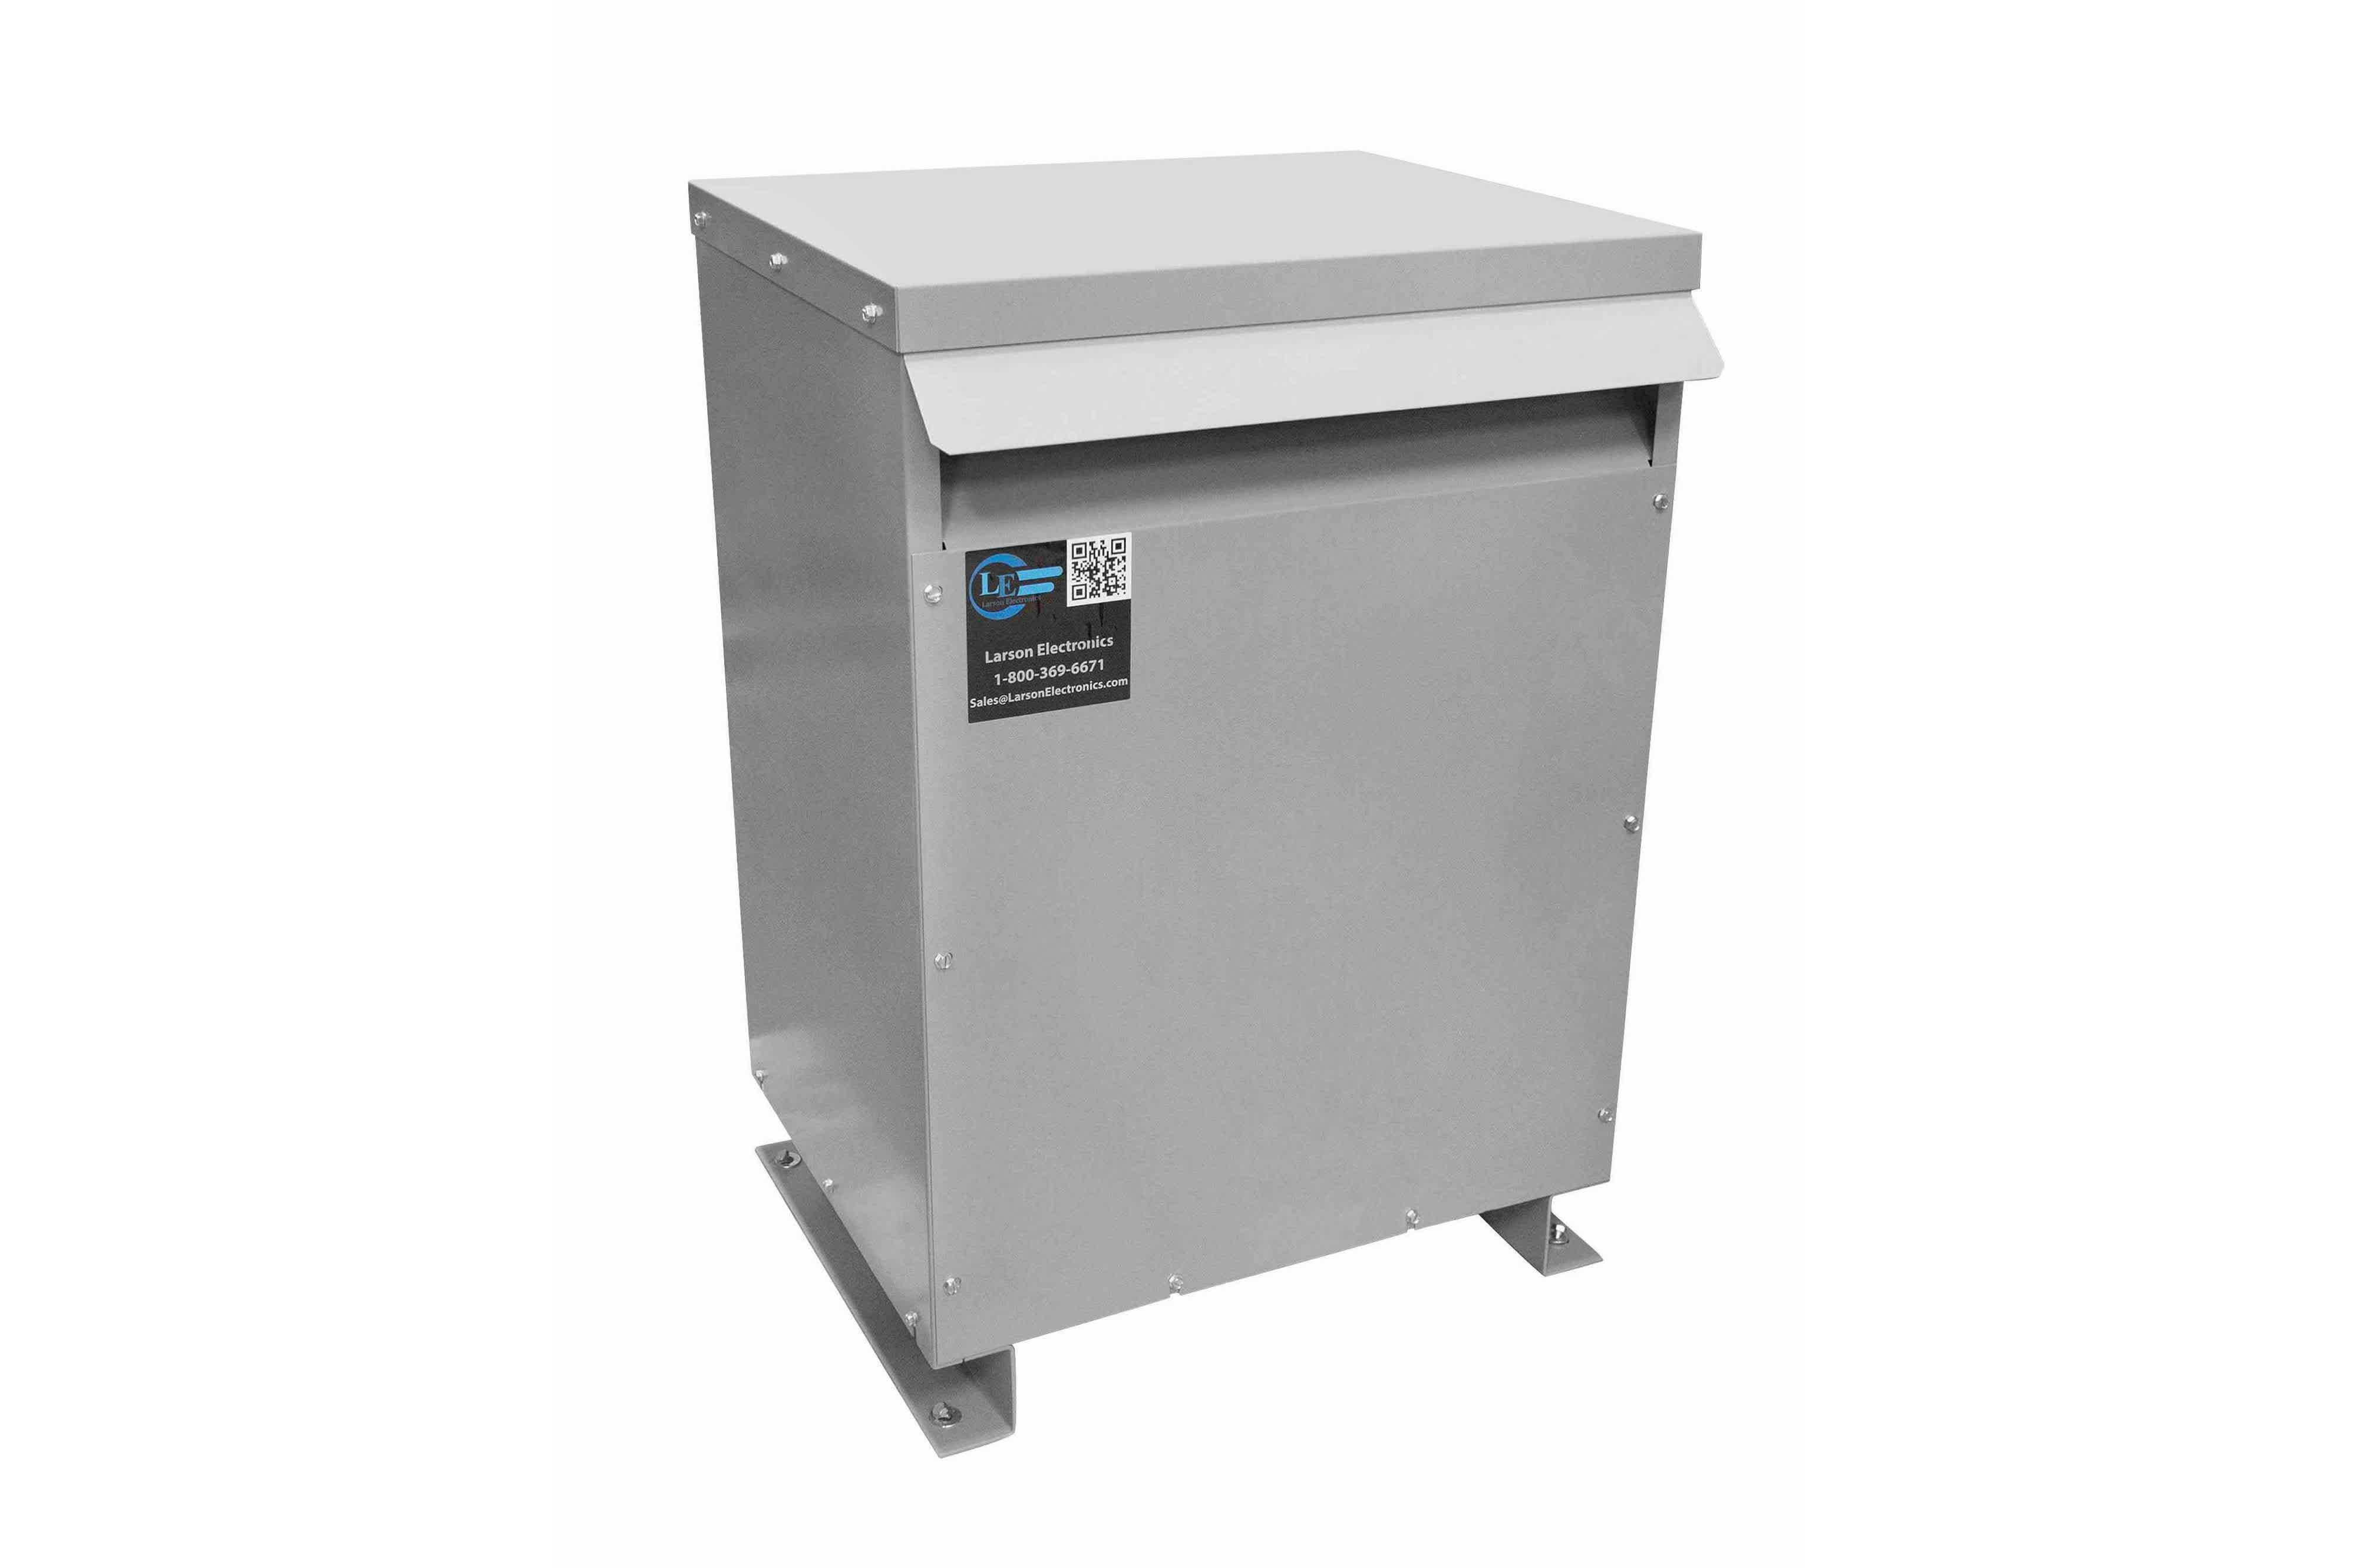 26 kVA 3PH Isolation Transformer, 480V Delta Primary, 575V Delta Secondary, N3R, Ventilated, 60 Hz